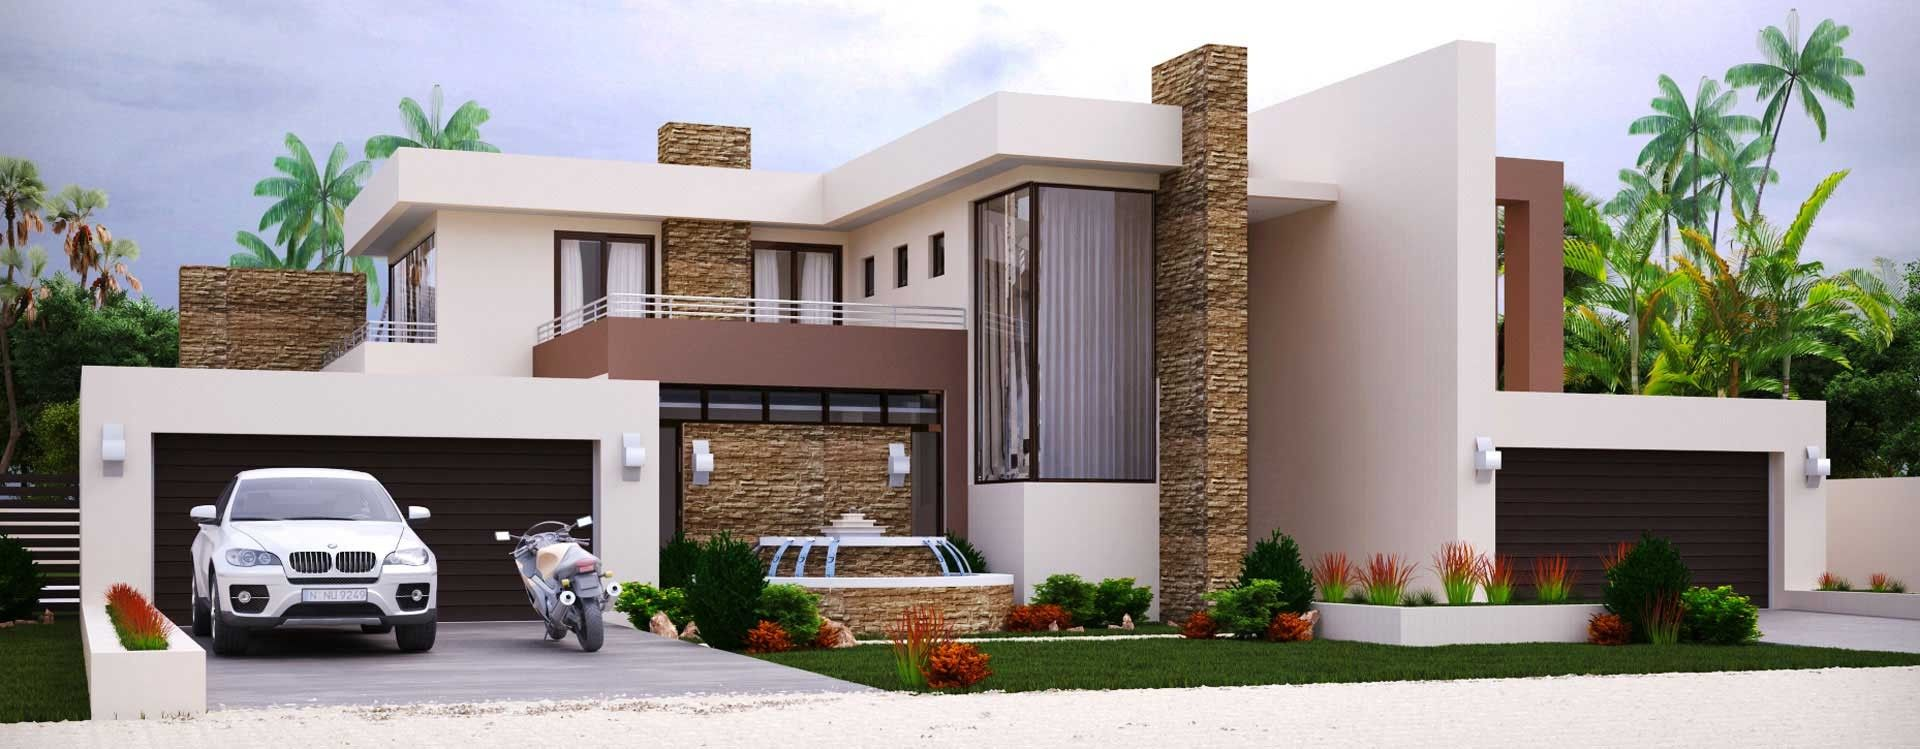 Best 25 House plans south africa ideas on Pinterest Single